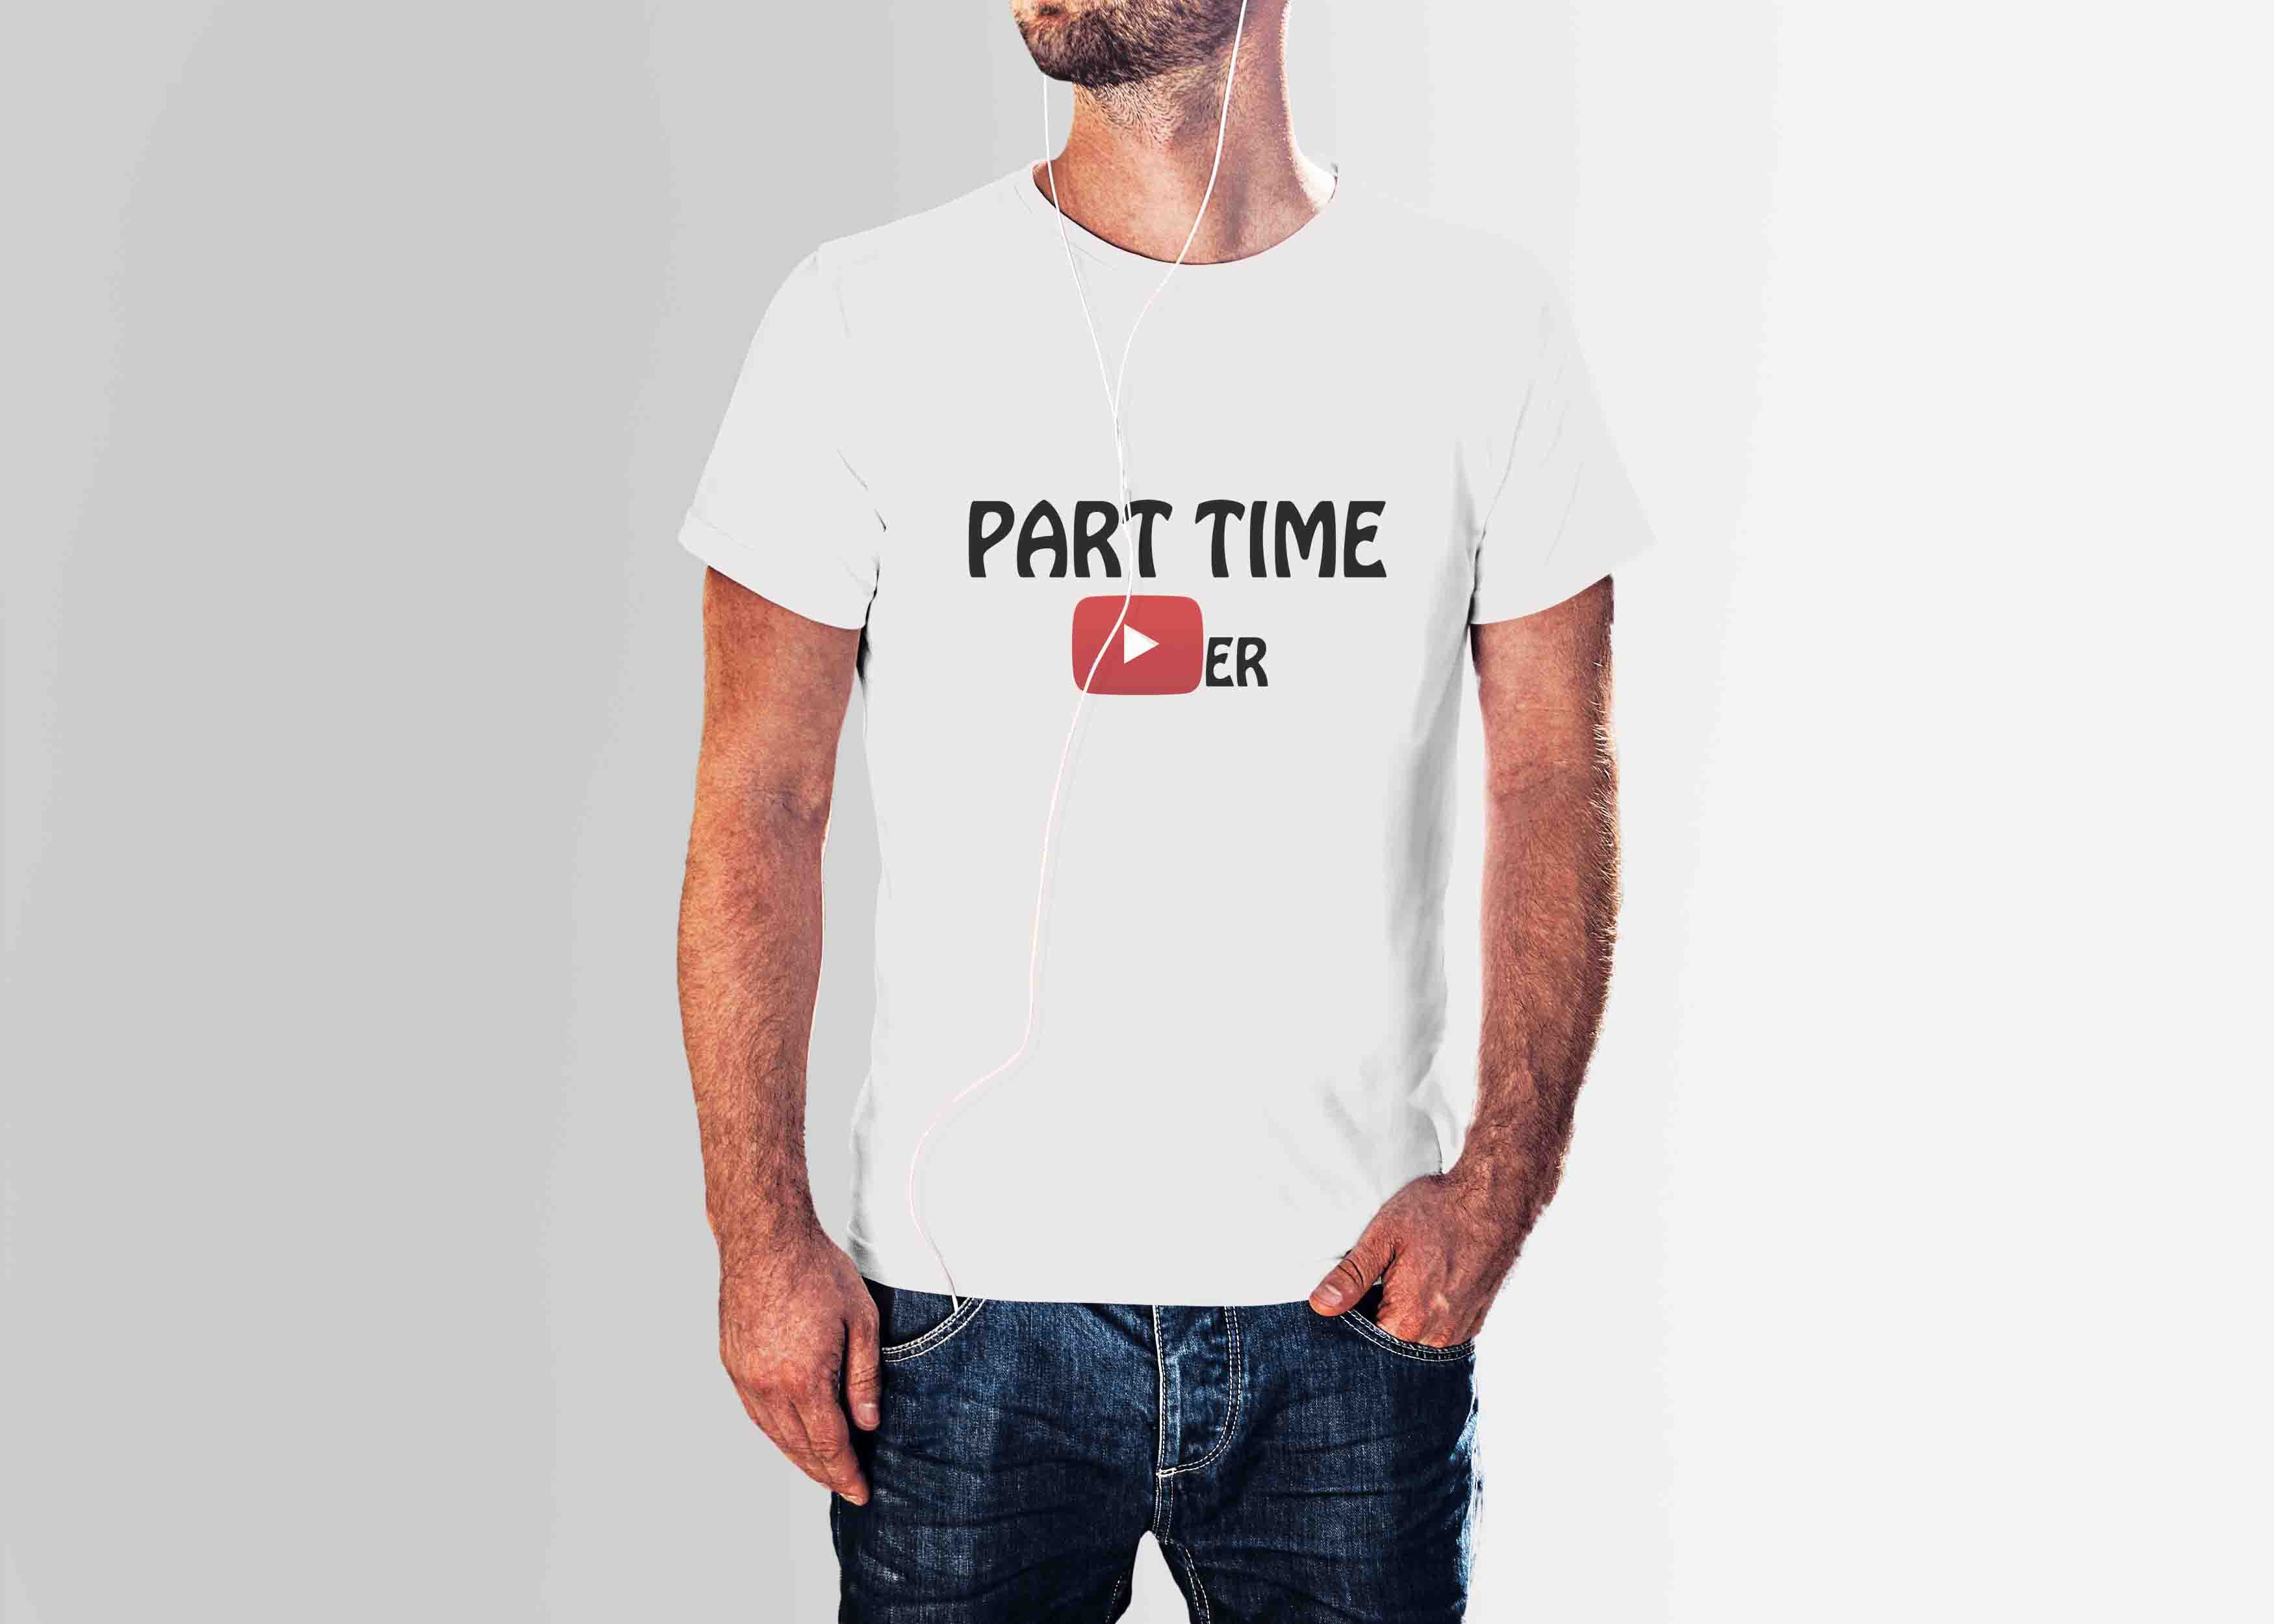 PART TIME YOUTUBER - YOUTUBE T-SHIRT © - Passion Swap